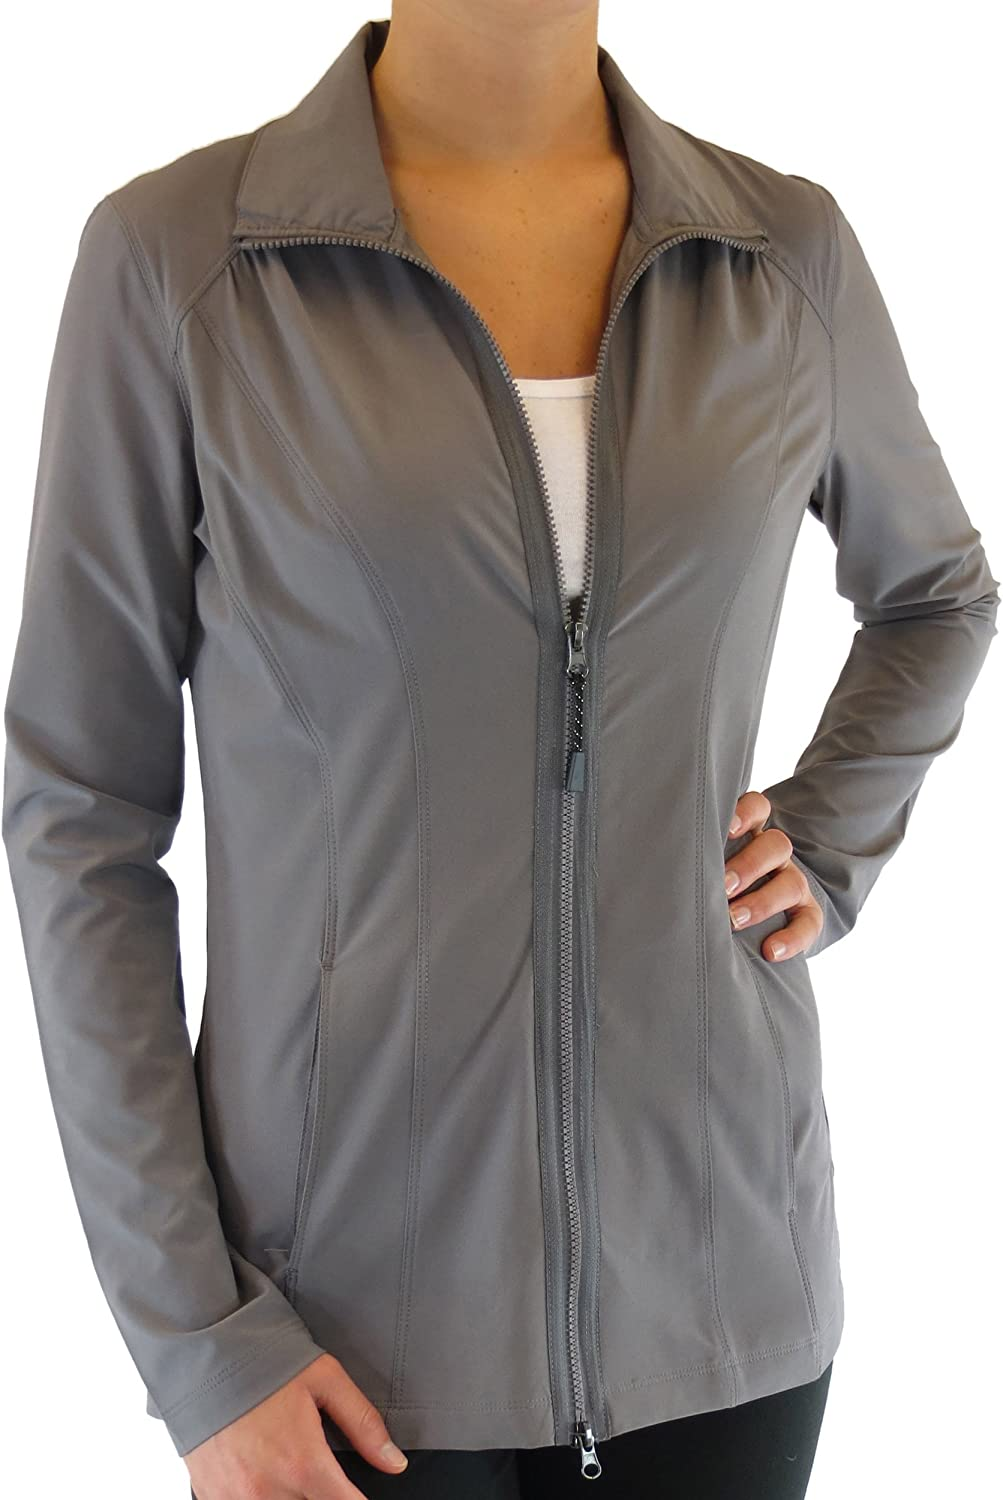 Product Raleigh Mall Alex + Abby Pursuit Women's Jacket